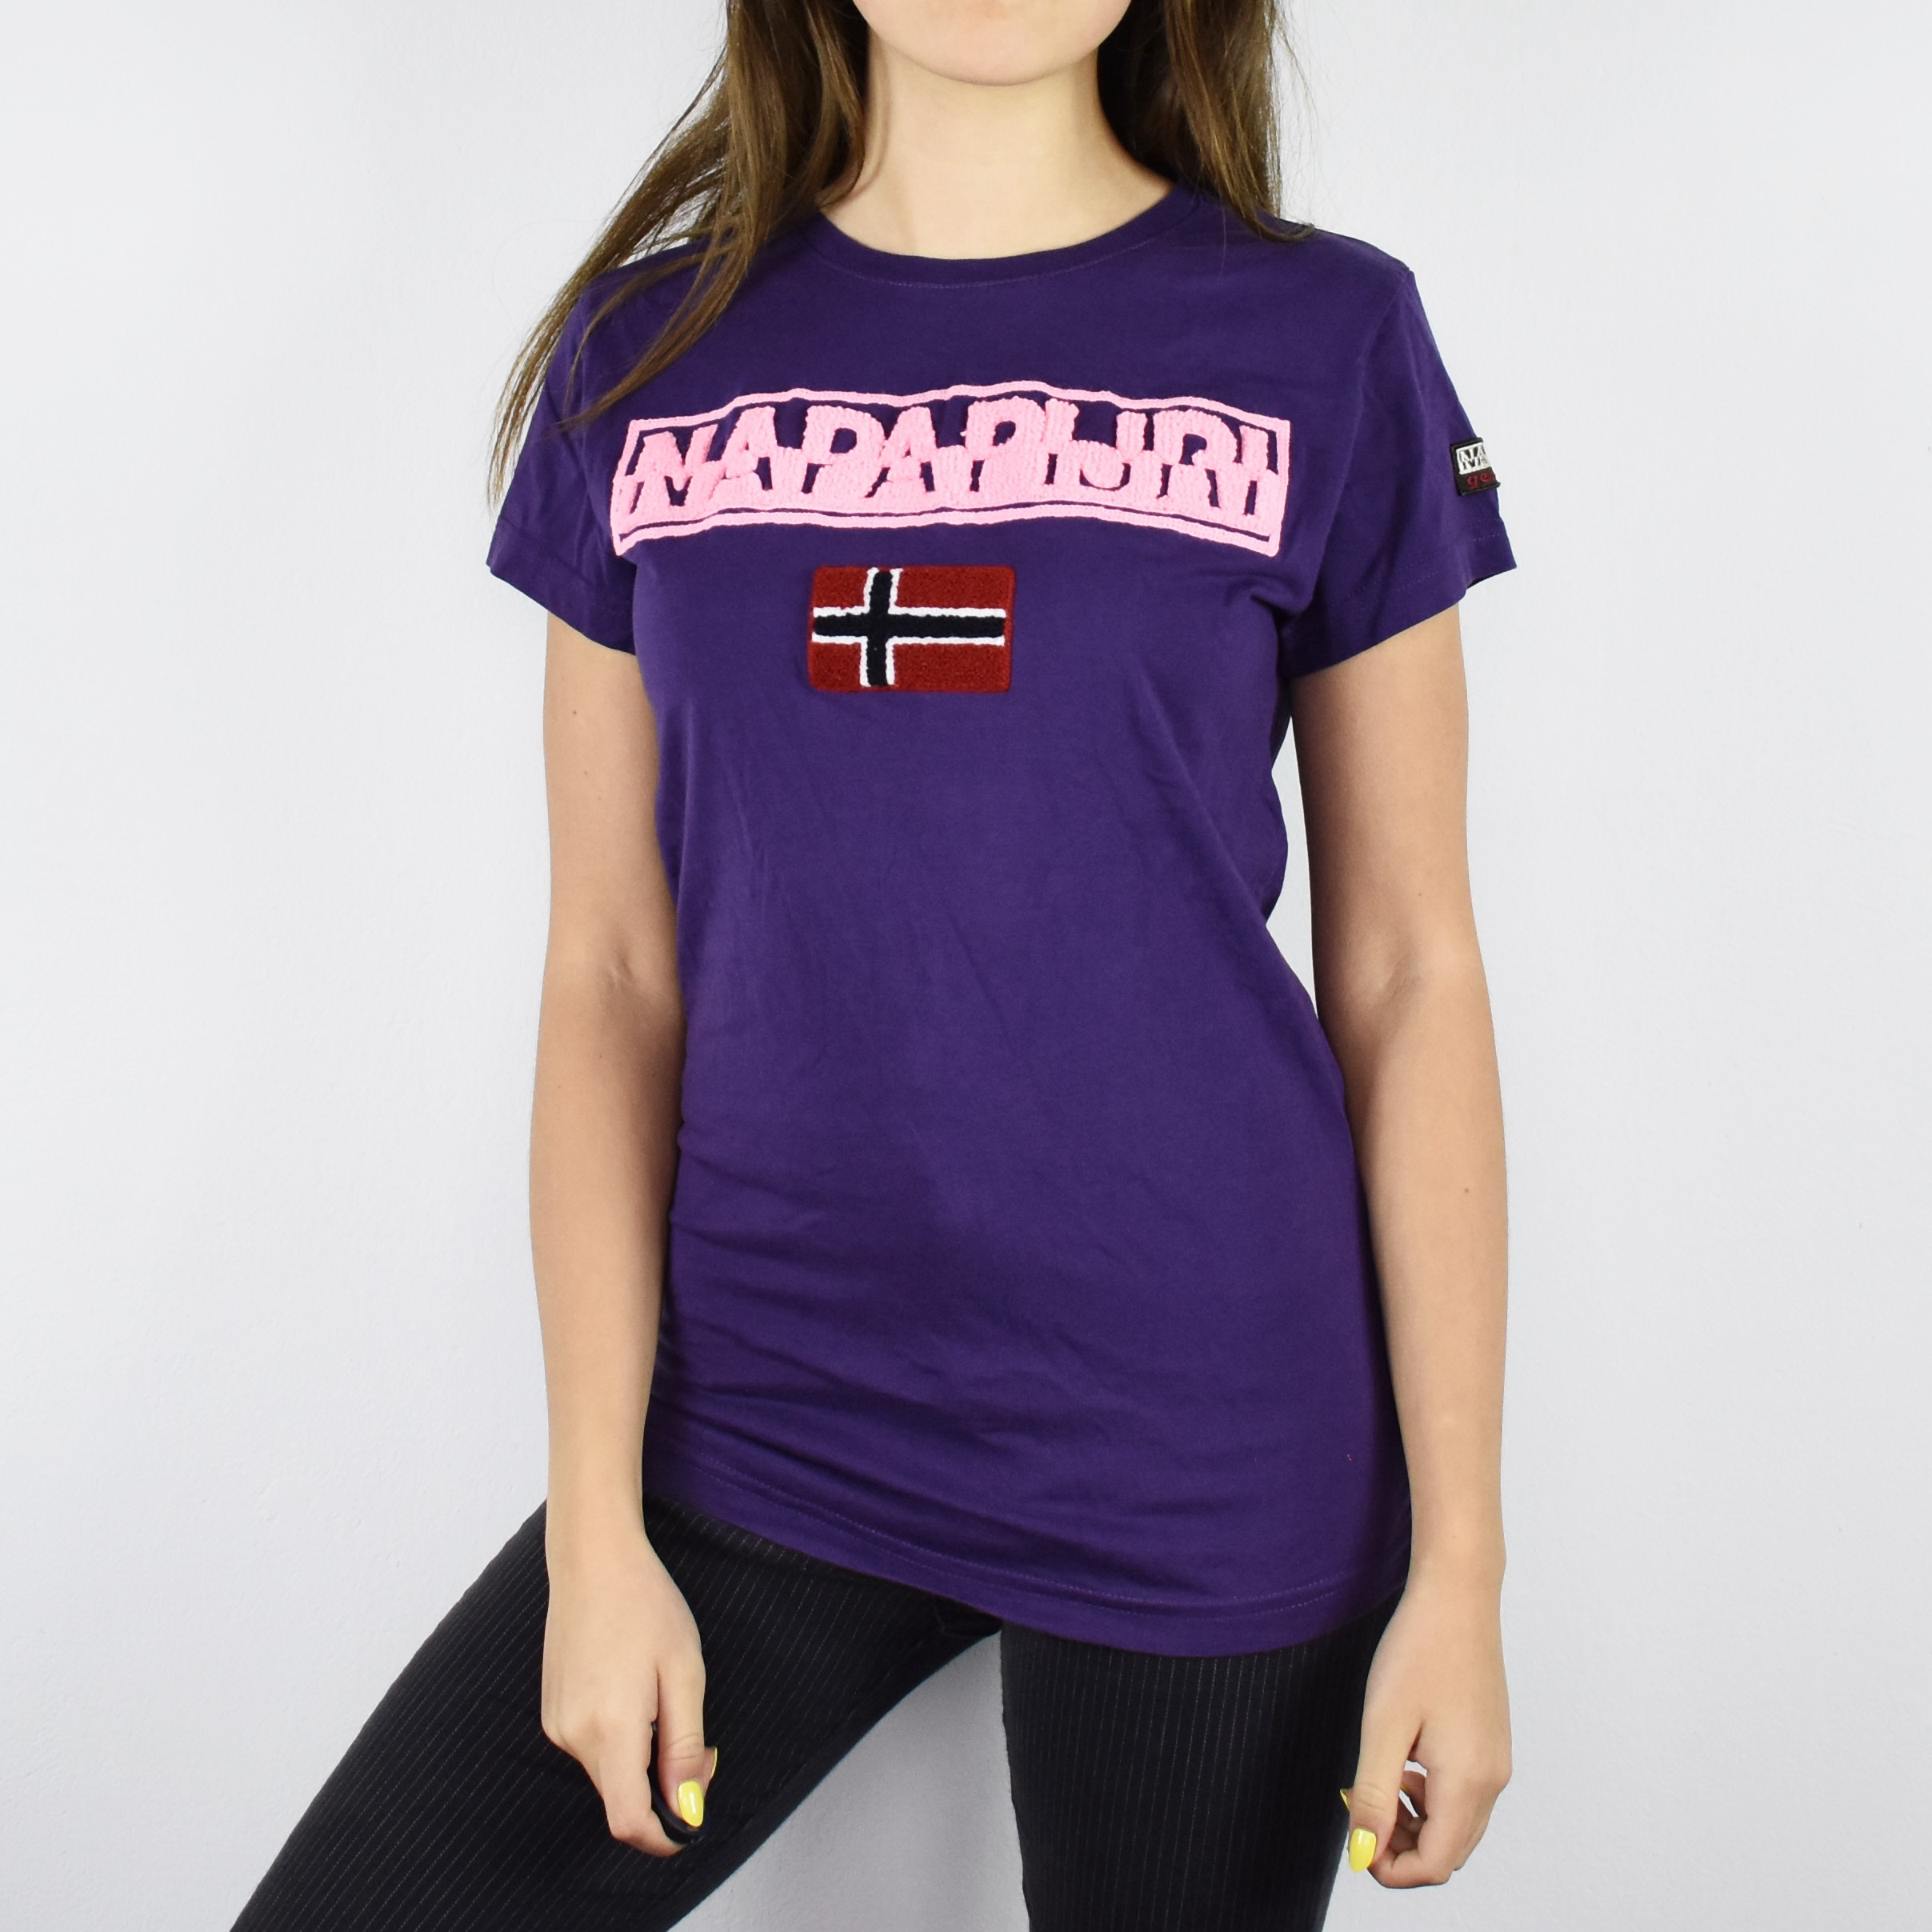 Vintage Napapijri shirt tee blouse top in purple and pink spellout